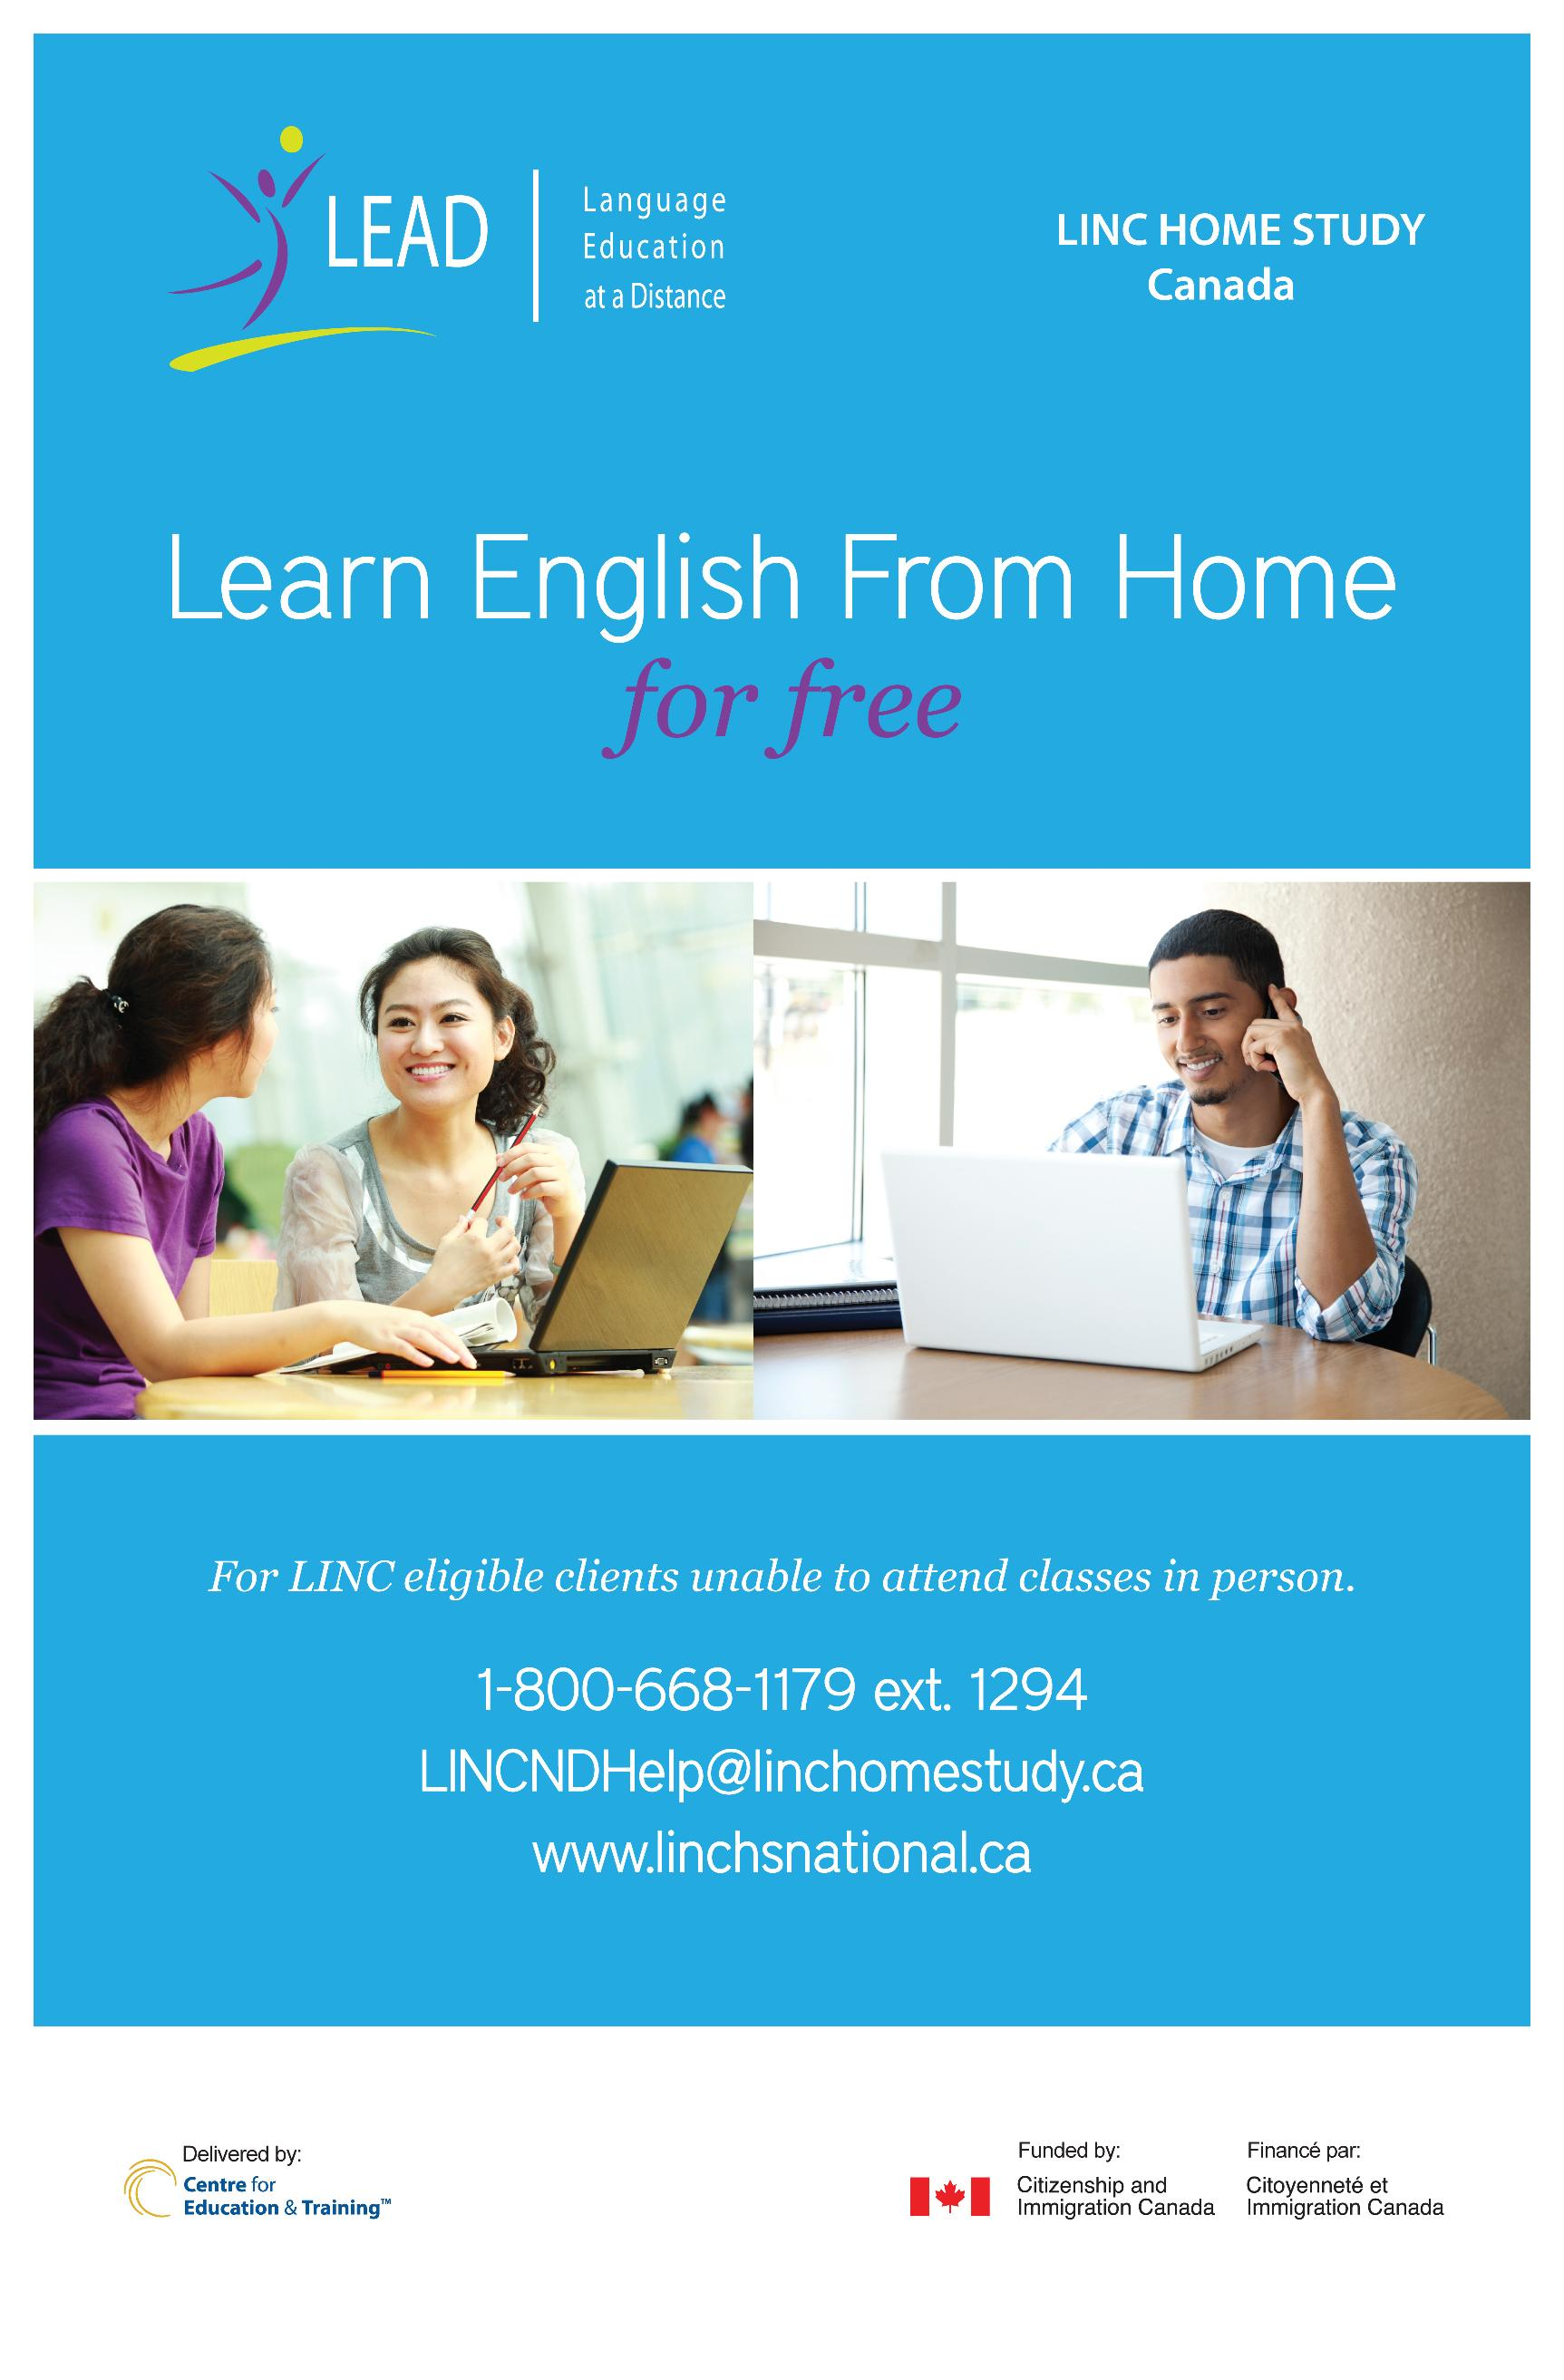 LINC Home Study Ontario - Posts | Facebook